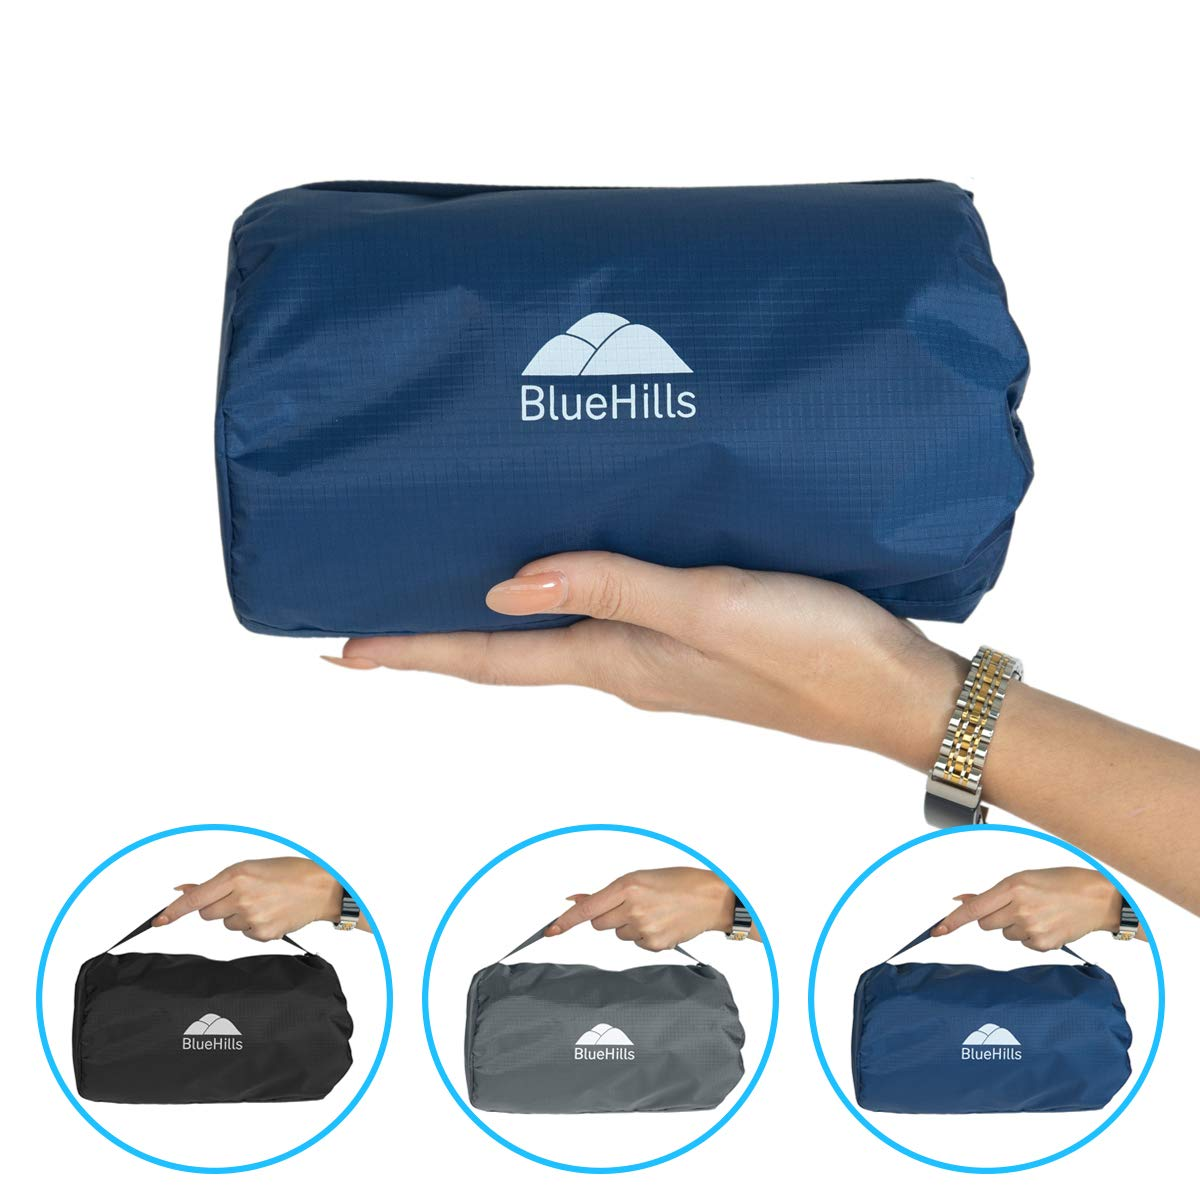 BlueHills Ultra Compact Travel Blanket - Navy Blue